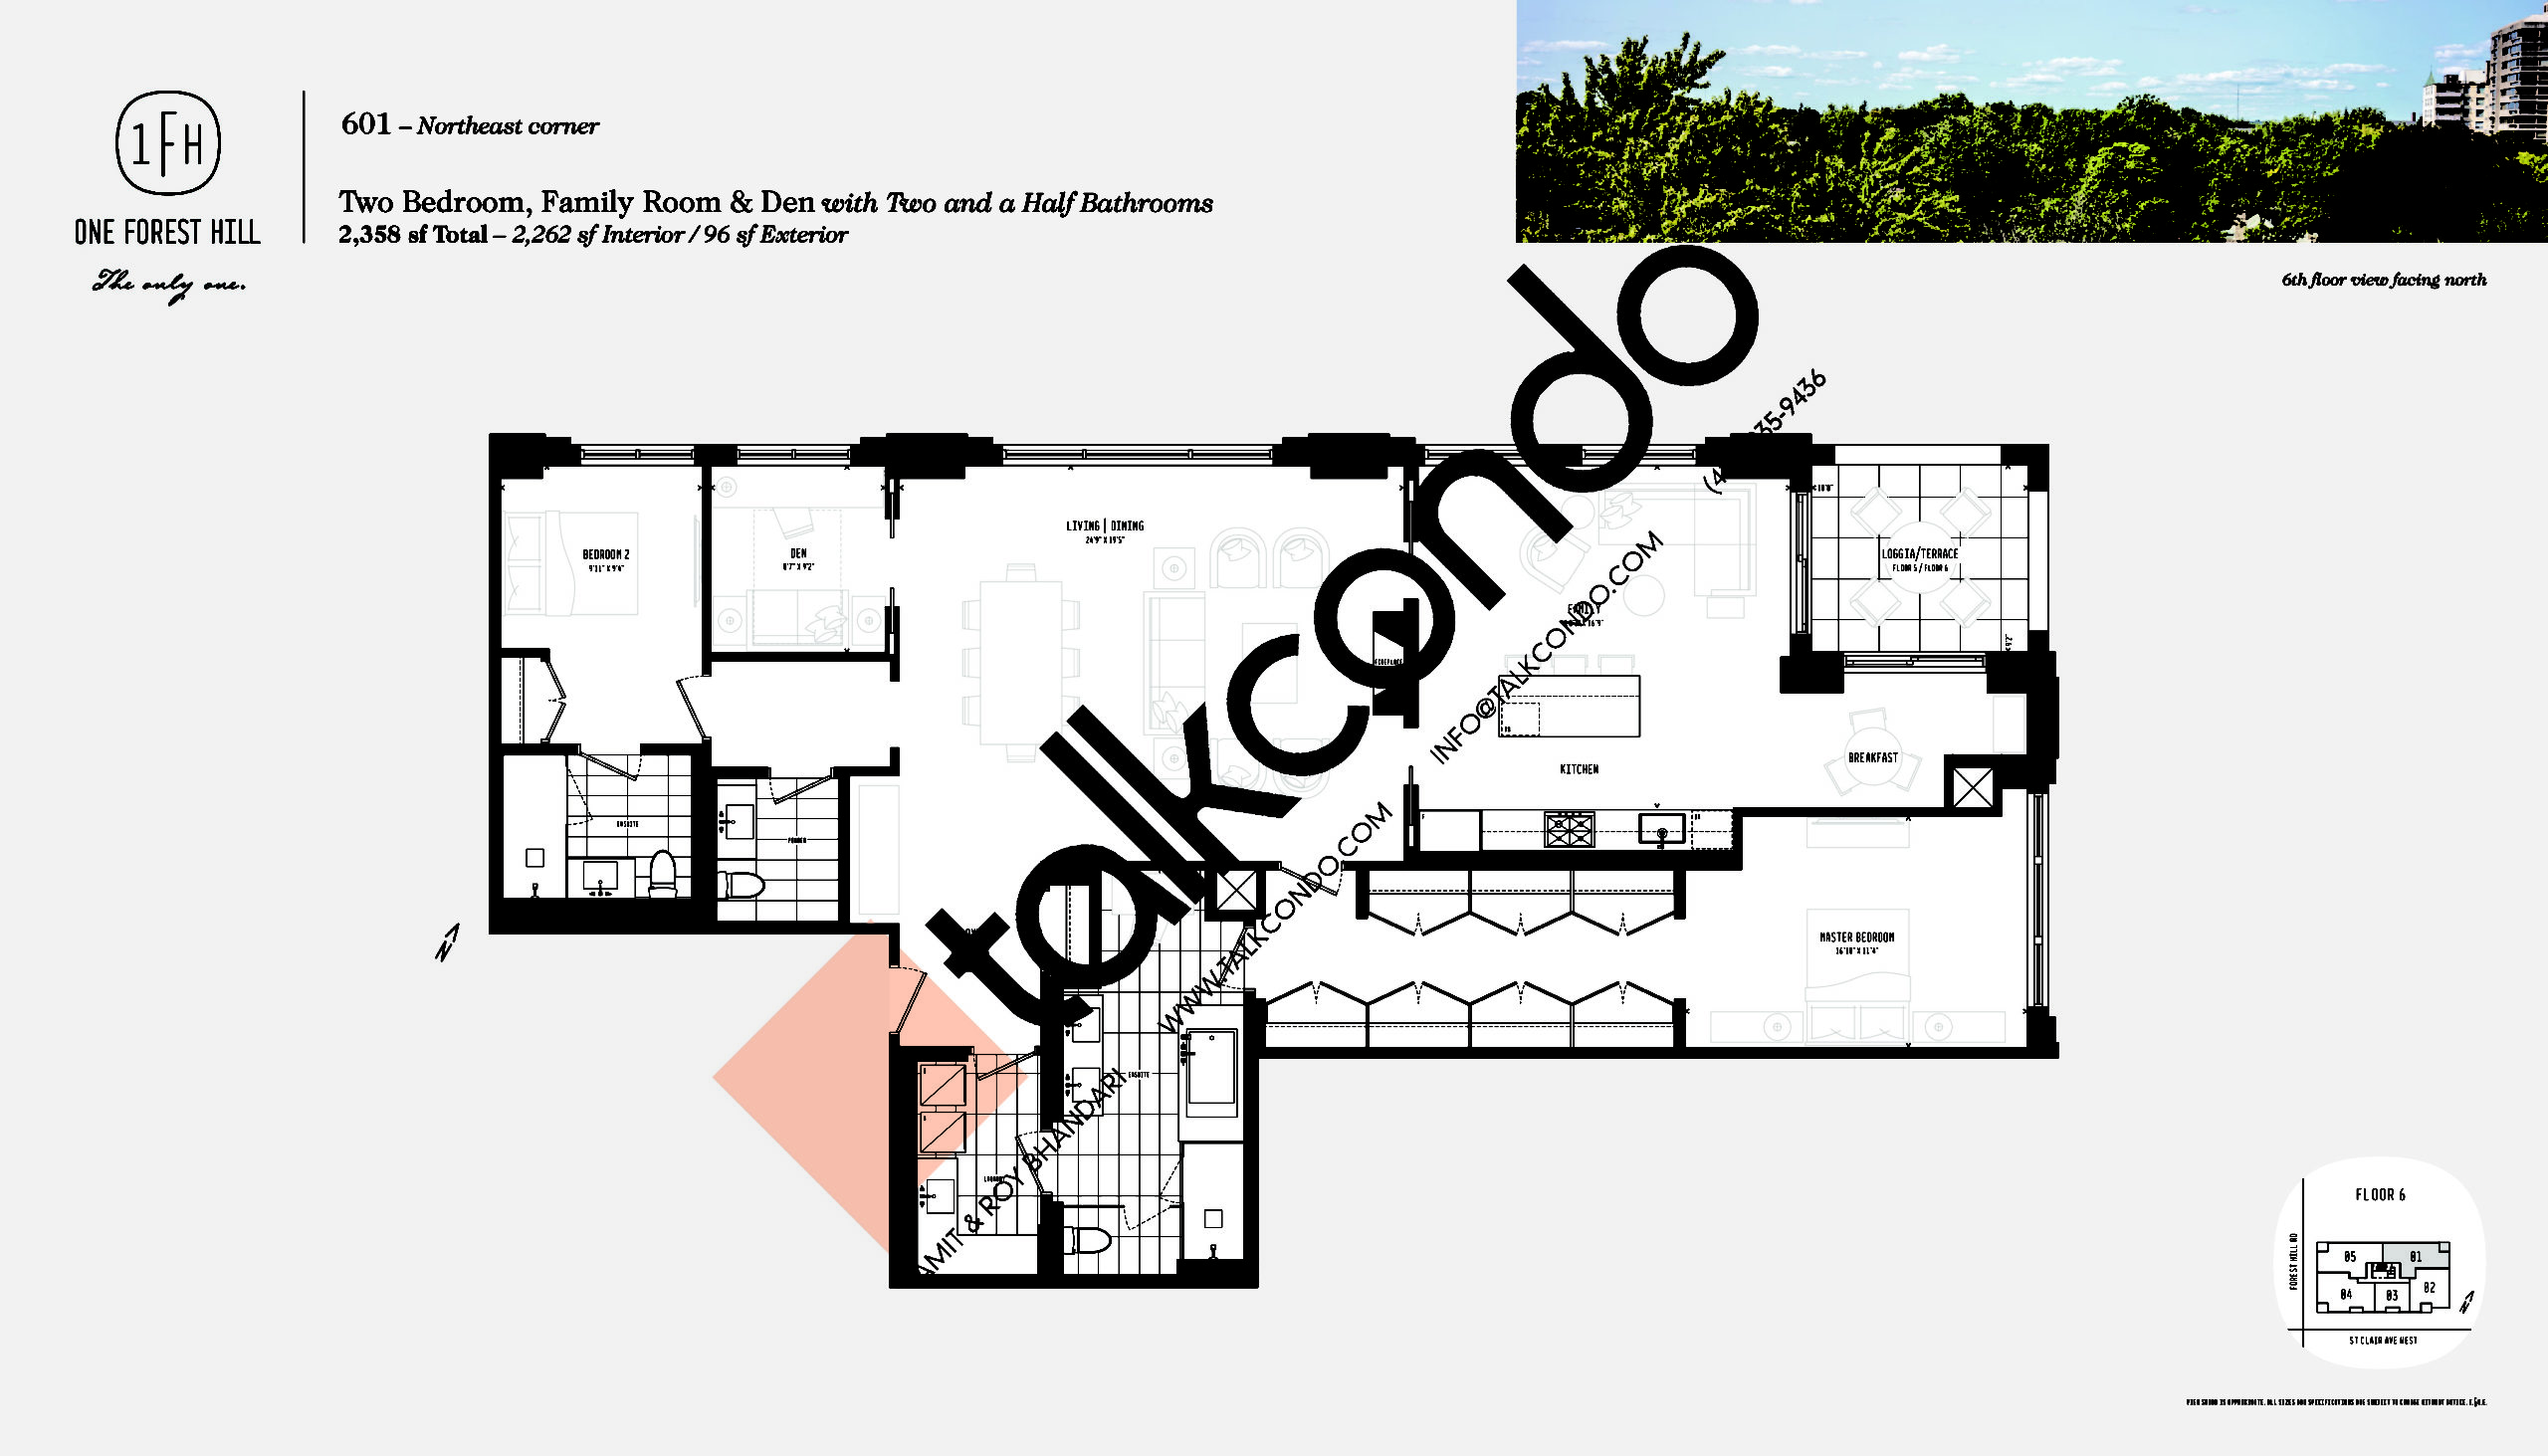 601 Floor Plan at One Forest Hill Condos - 2262 sq.ft